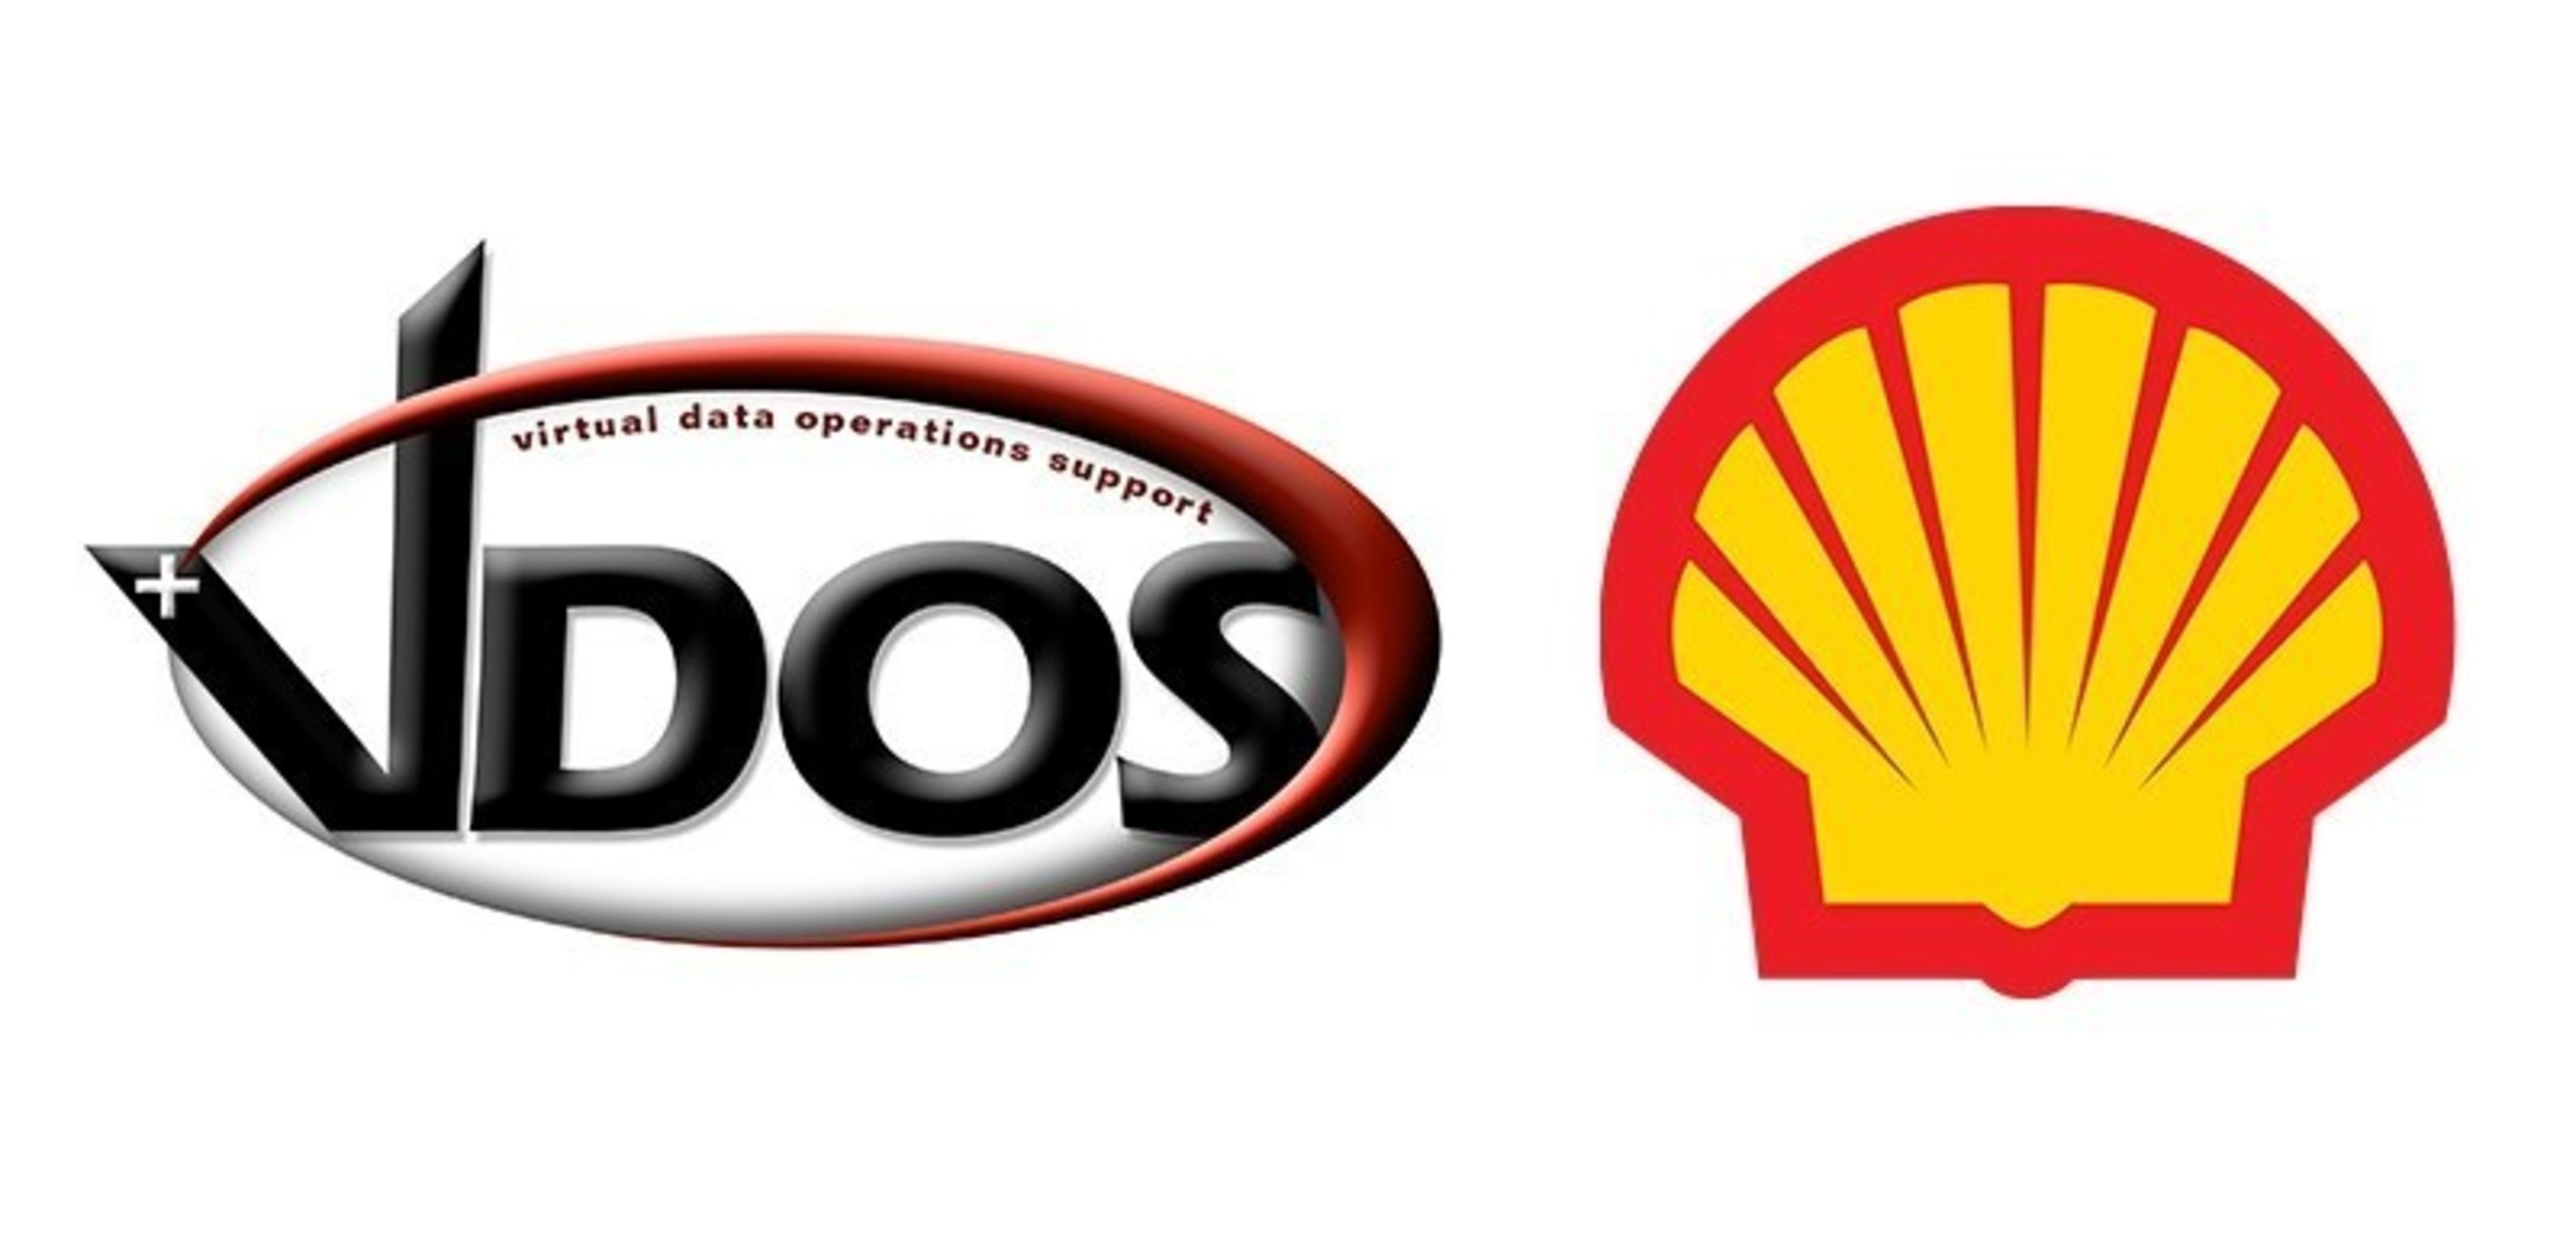 VDOS Global has been approved by the FAA to pioneer the use of UAV technology to perform off-shore inspections for structures owned by Shell.